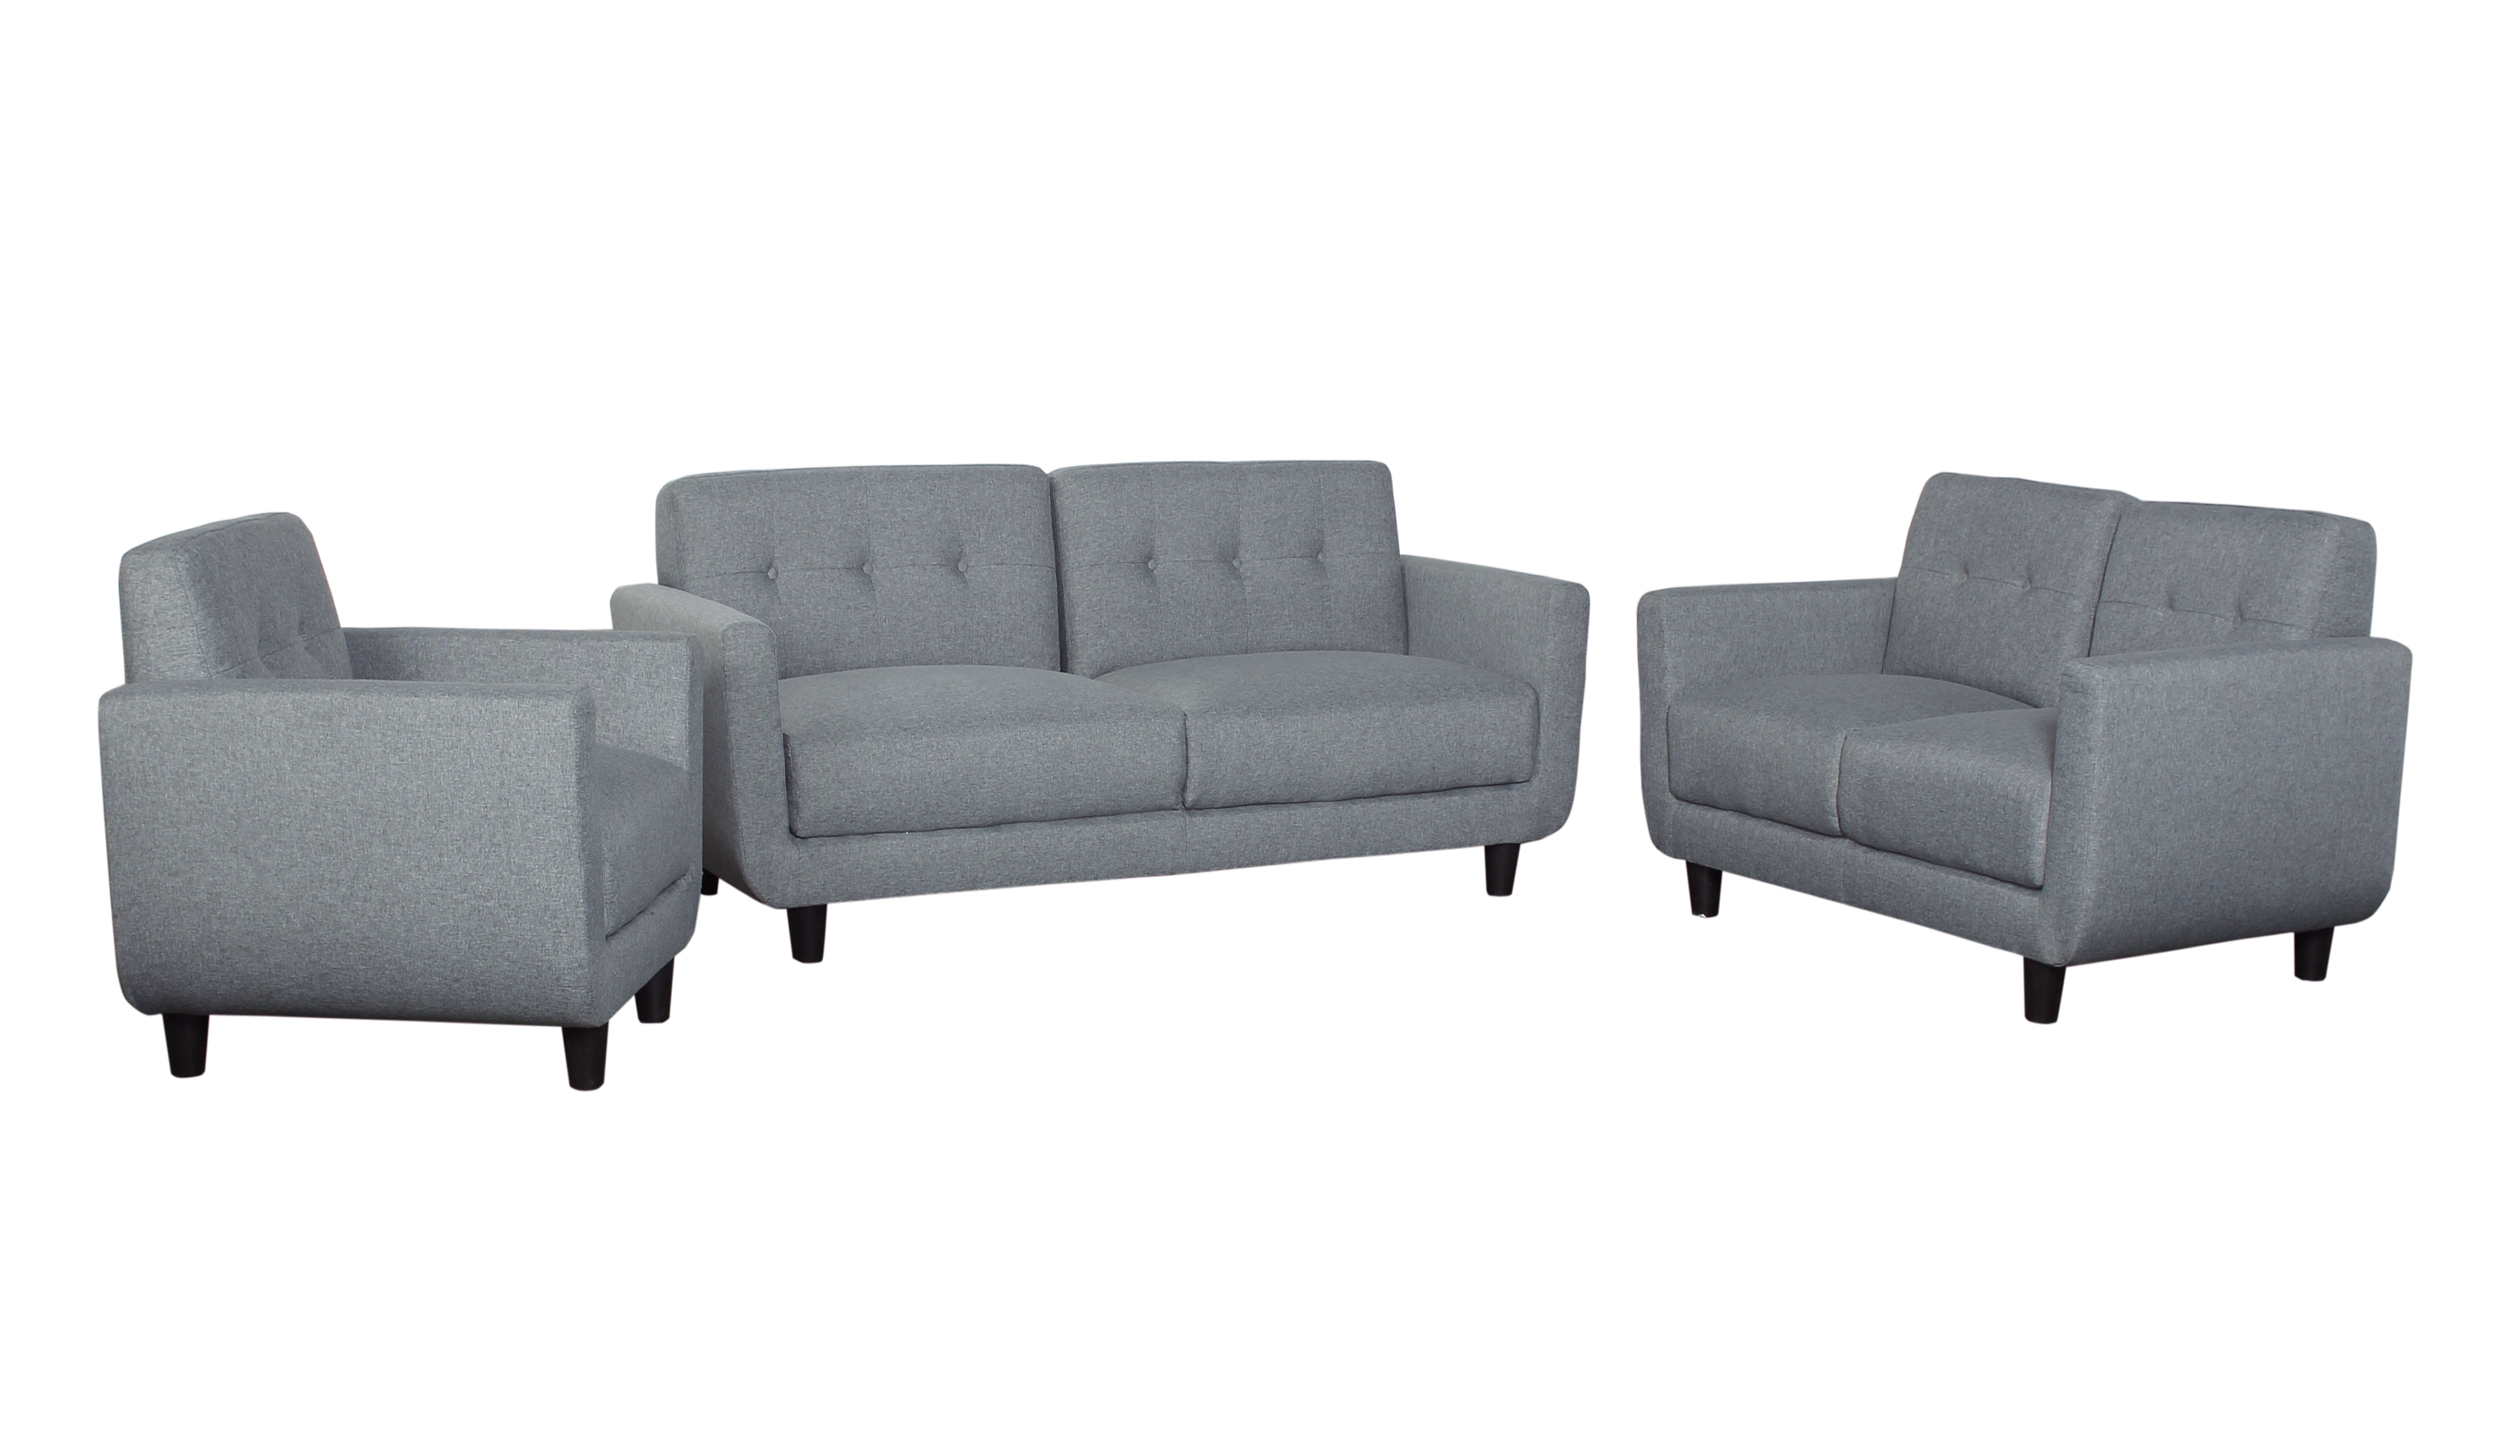 grey living room furniture set modern decorating ideas for small rooms sets under 500 legend sofa